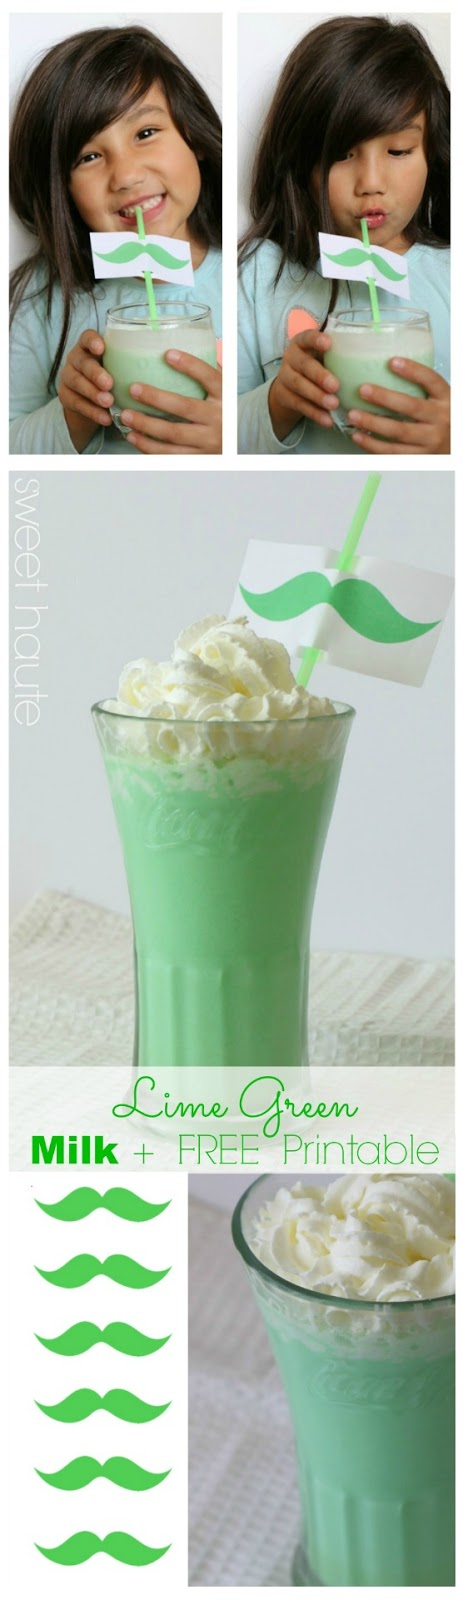 http://sweethaute.blogspot.com/2015/03/st-patricks-lime-green-milk-free.html